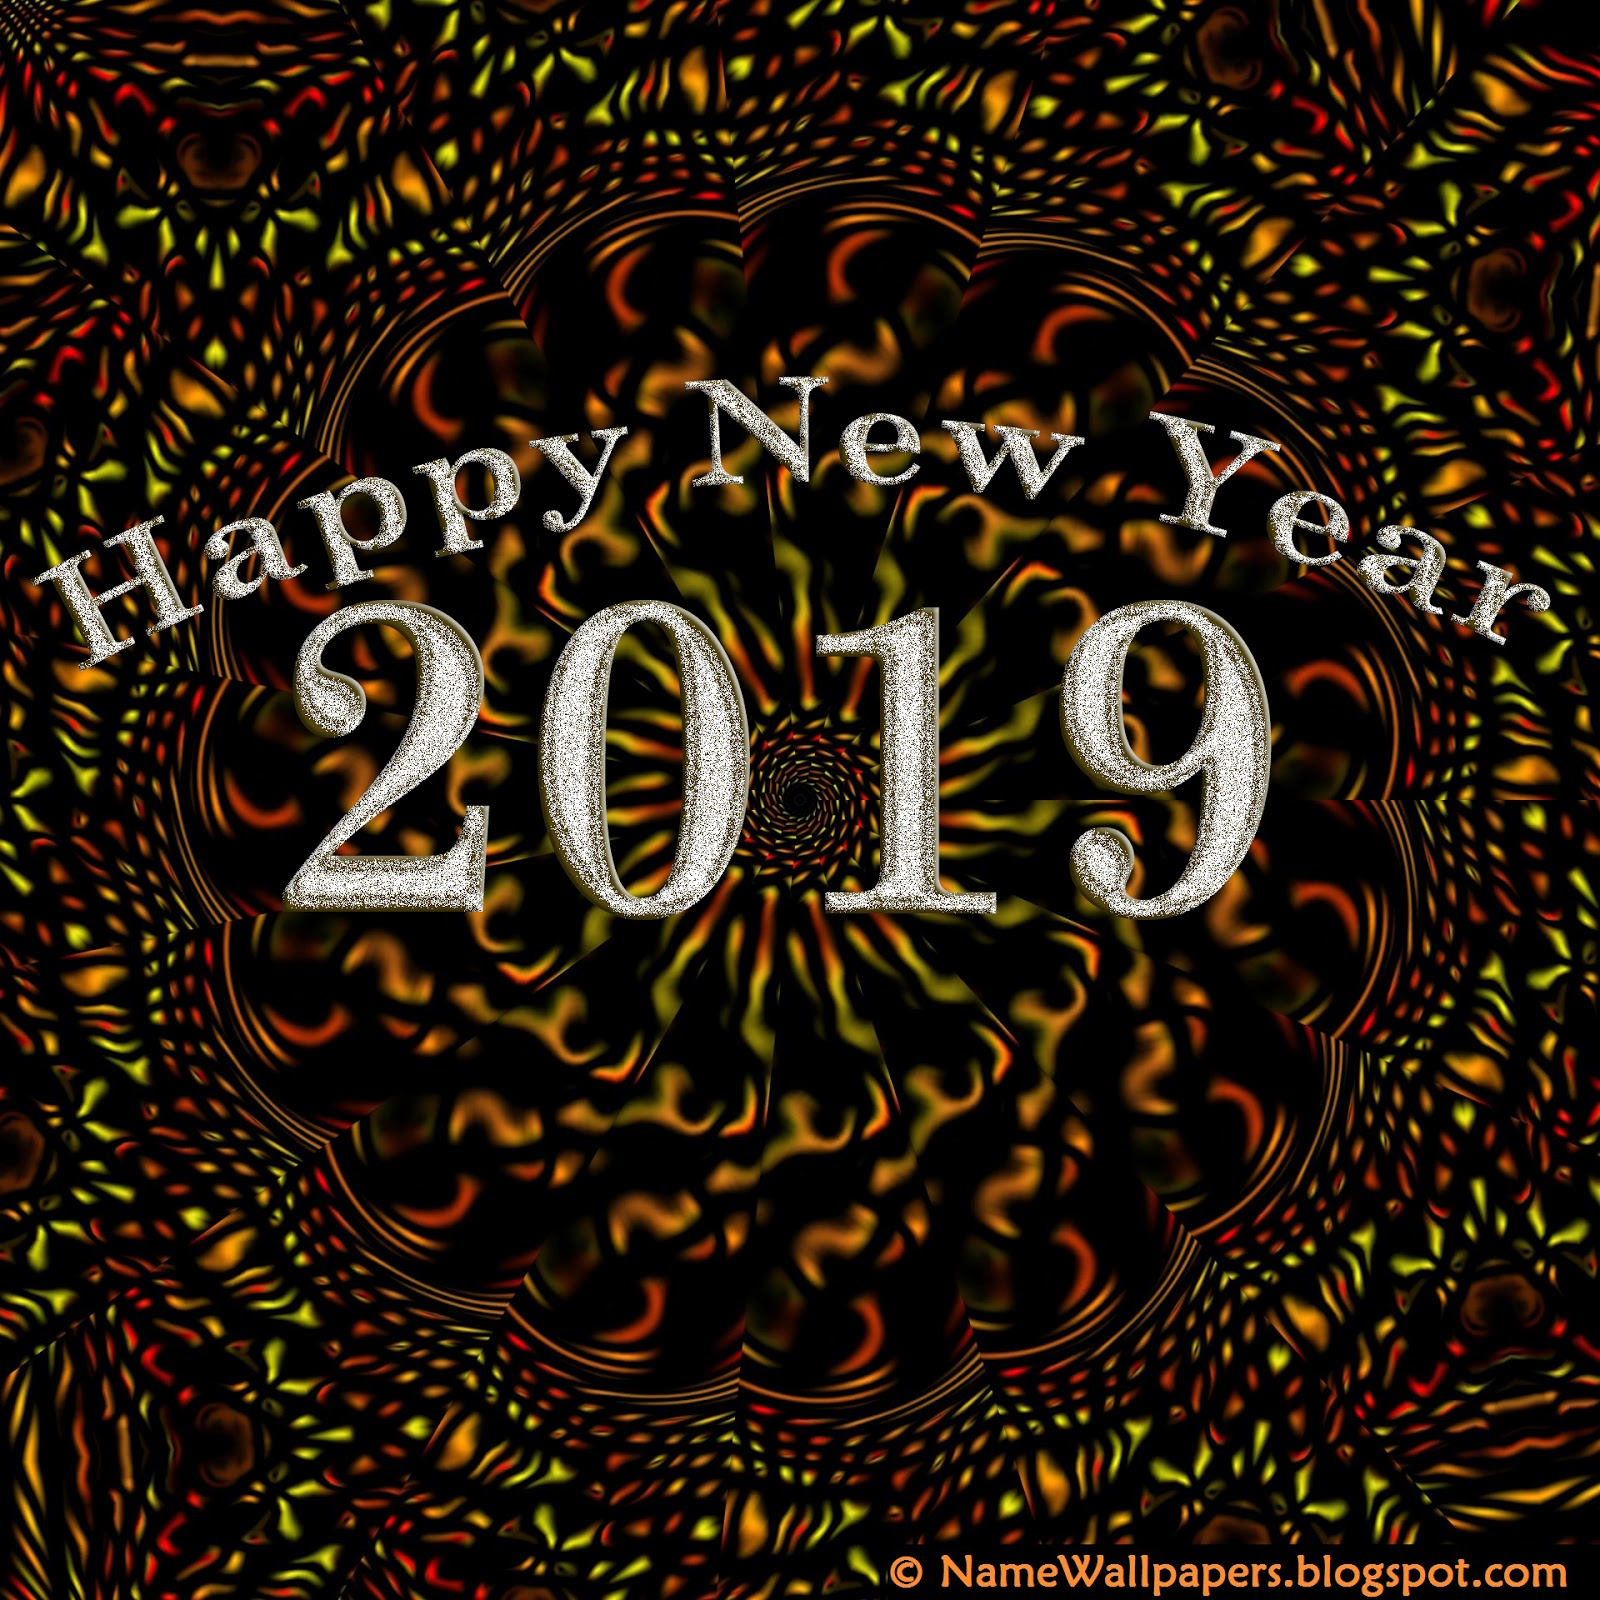 Happy New Year 2019 Images HD Happy New Year 2019 Images 1600x1600